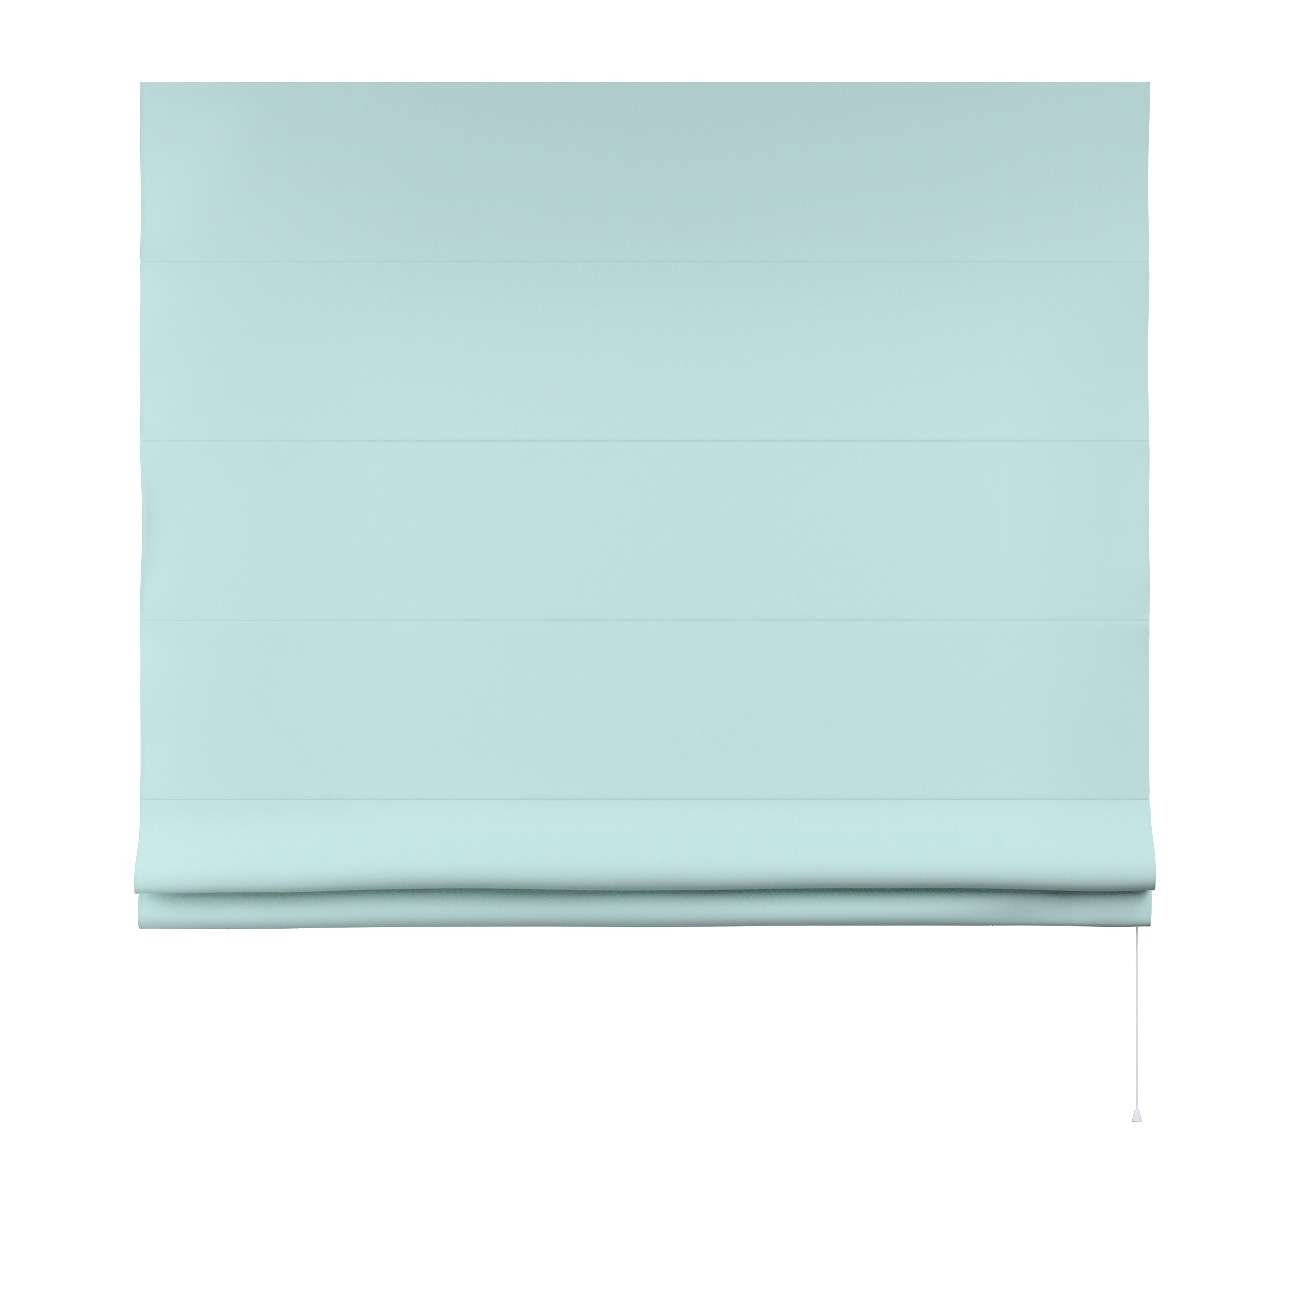 Billie roman blind in collection Cotton Story, fabric: 702-10